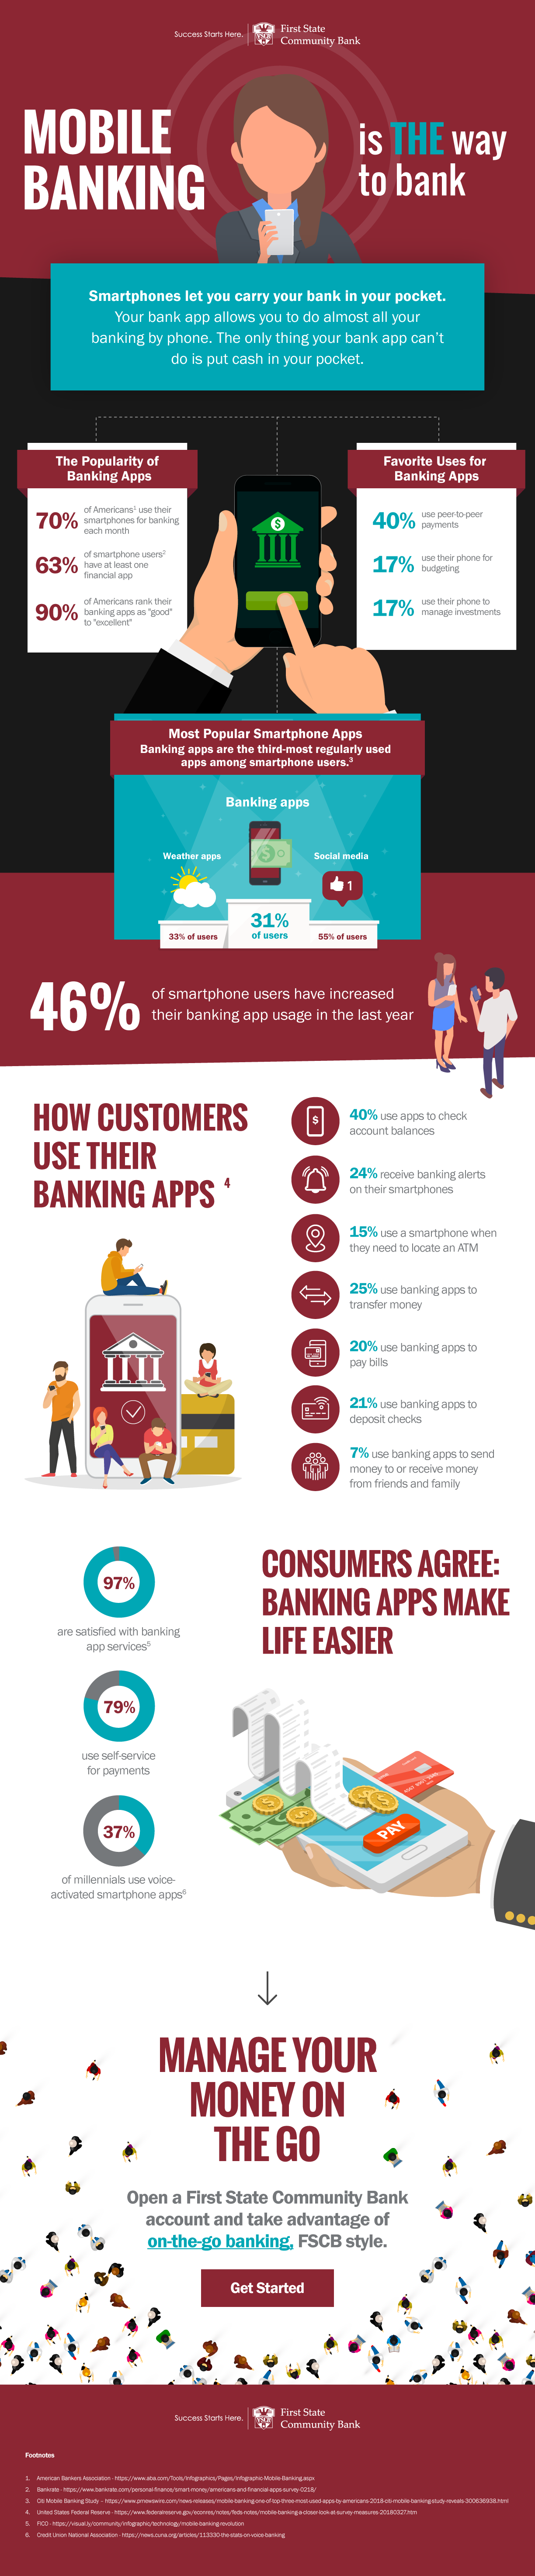 FSCB Infographic - Mobile Banking is THE Way to Bank -